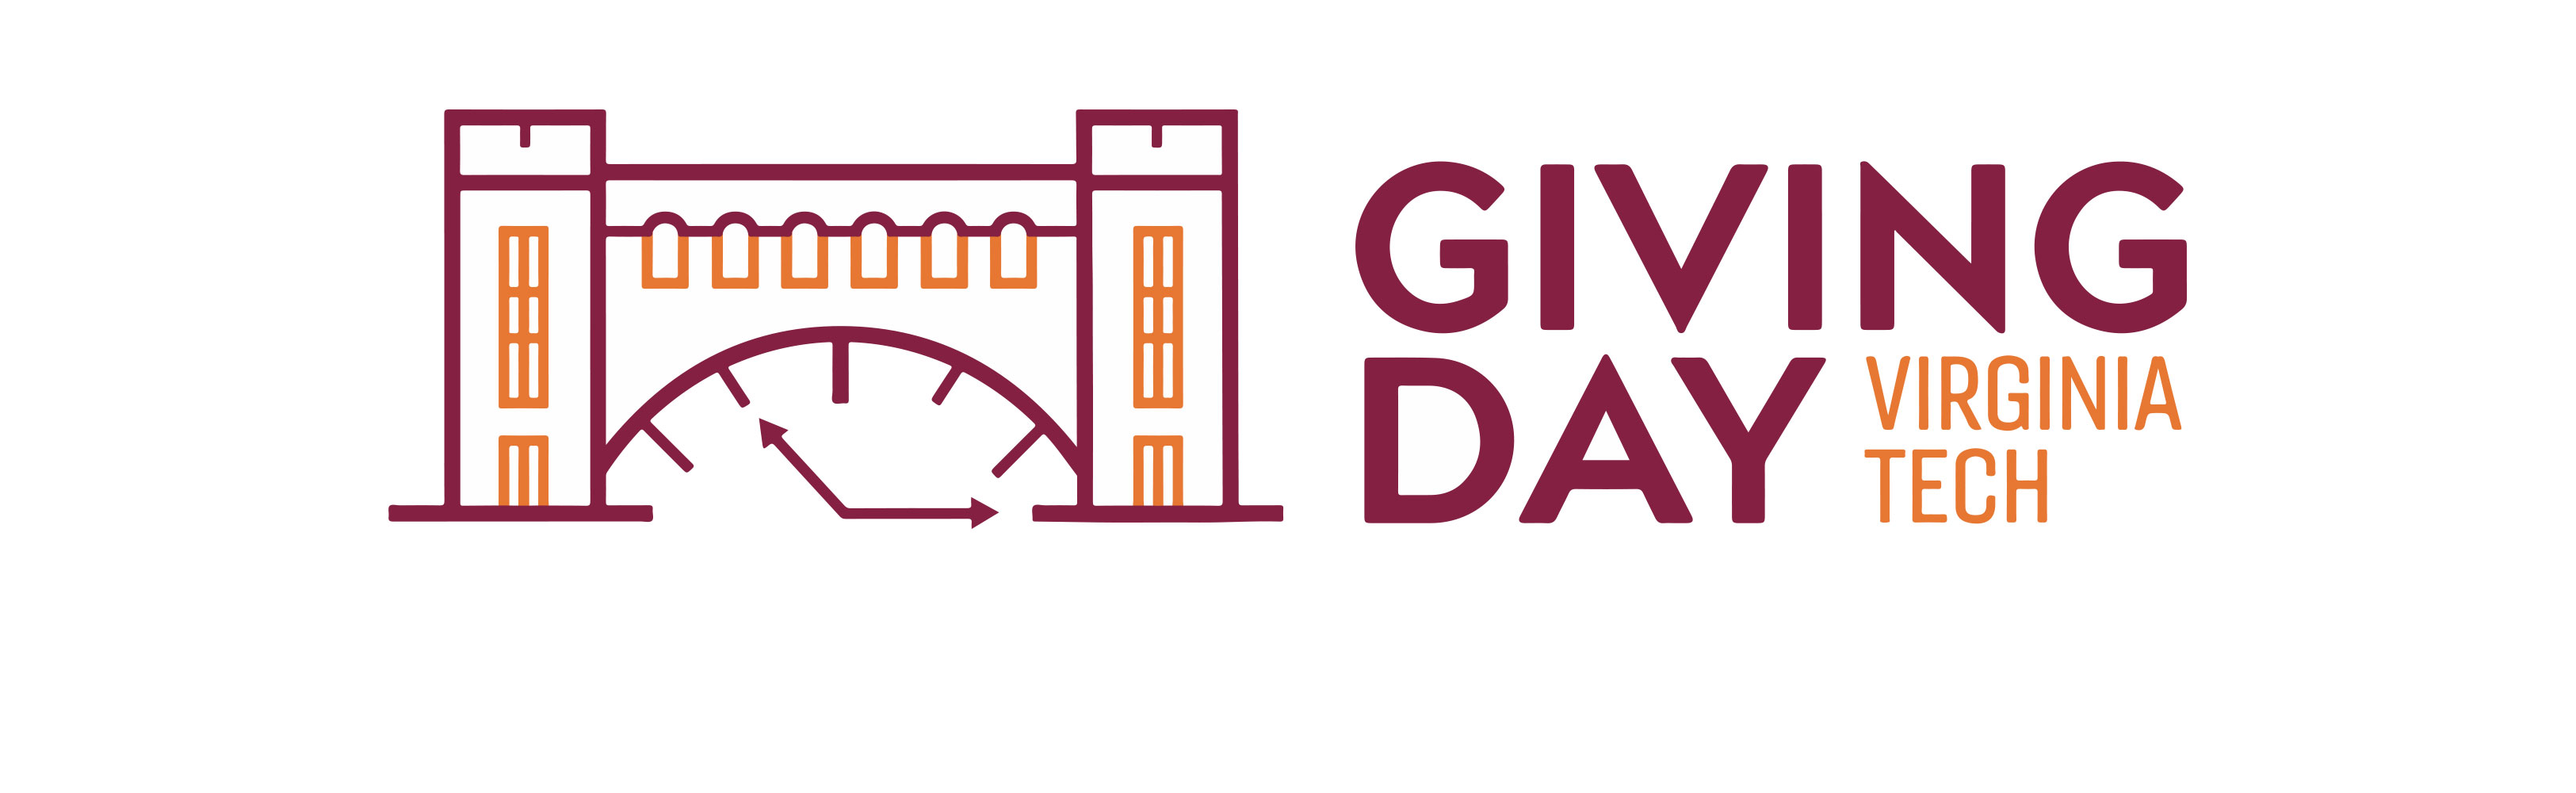 Still time to make a gift! Giving Day goes until noon